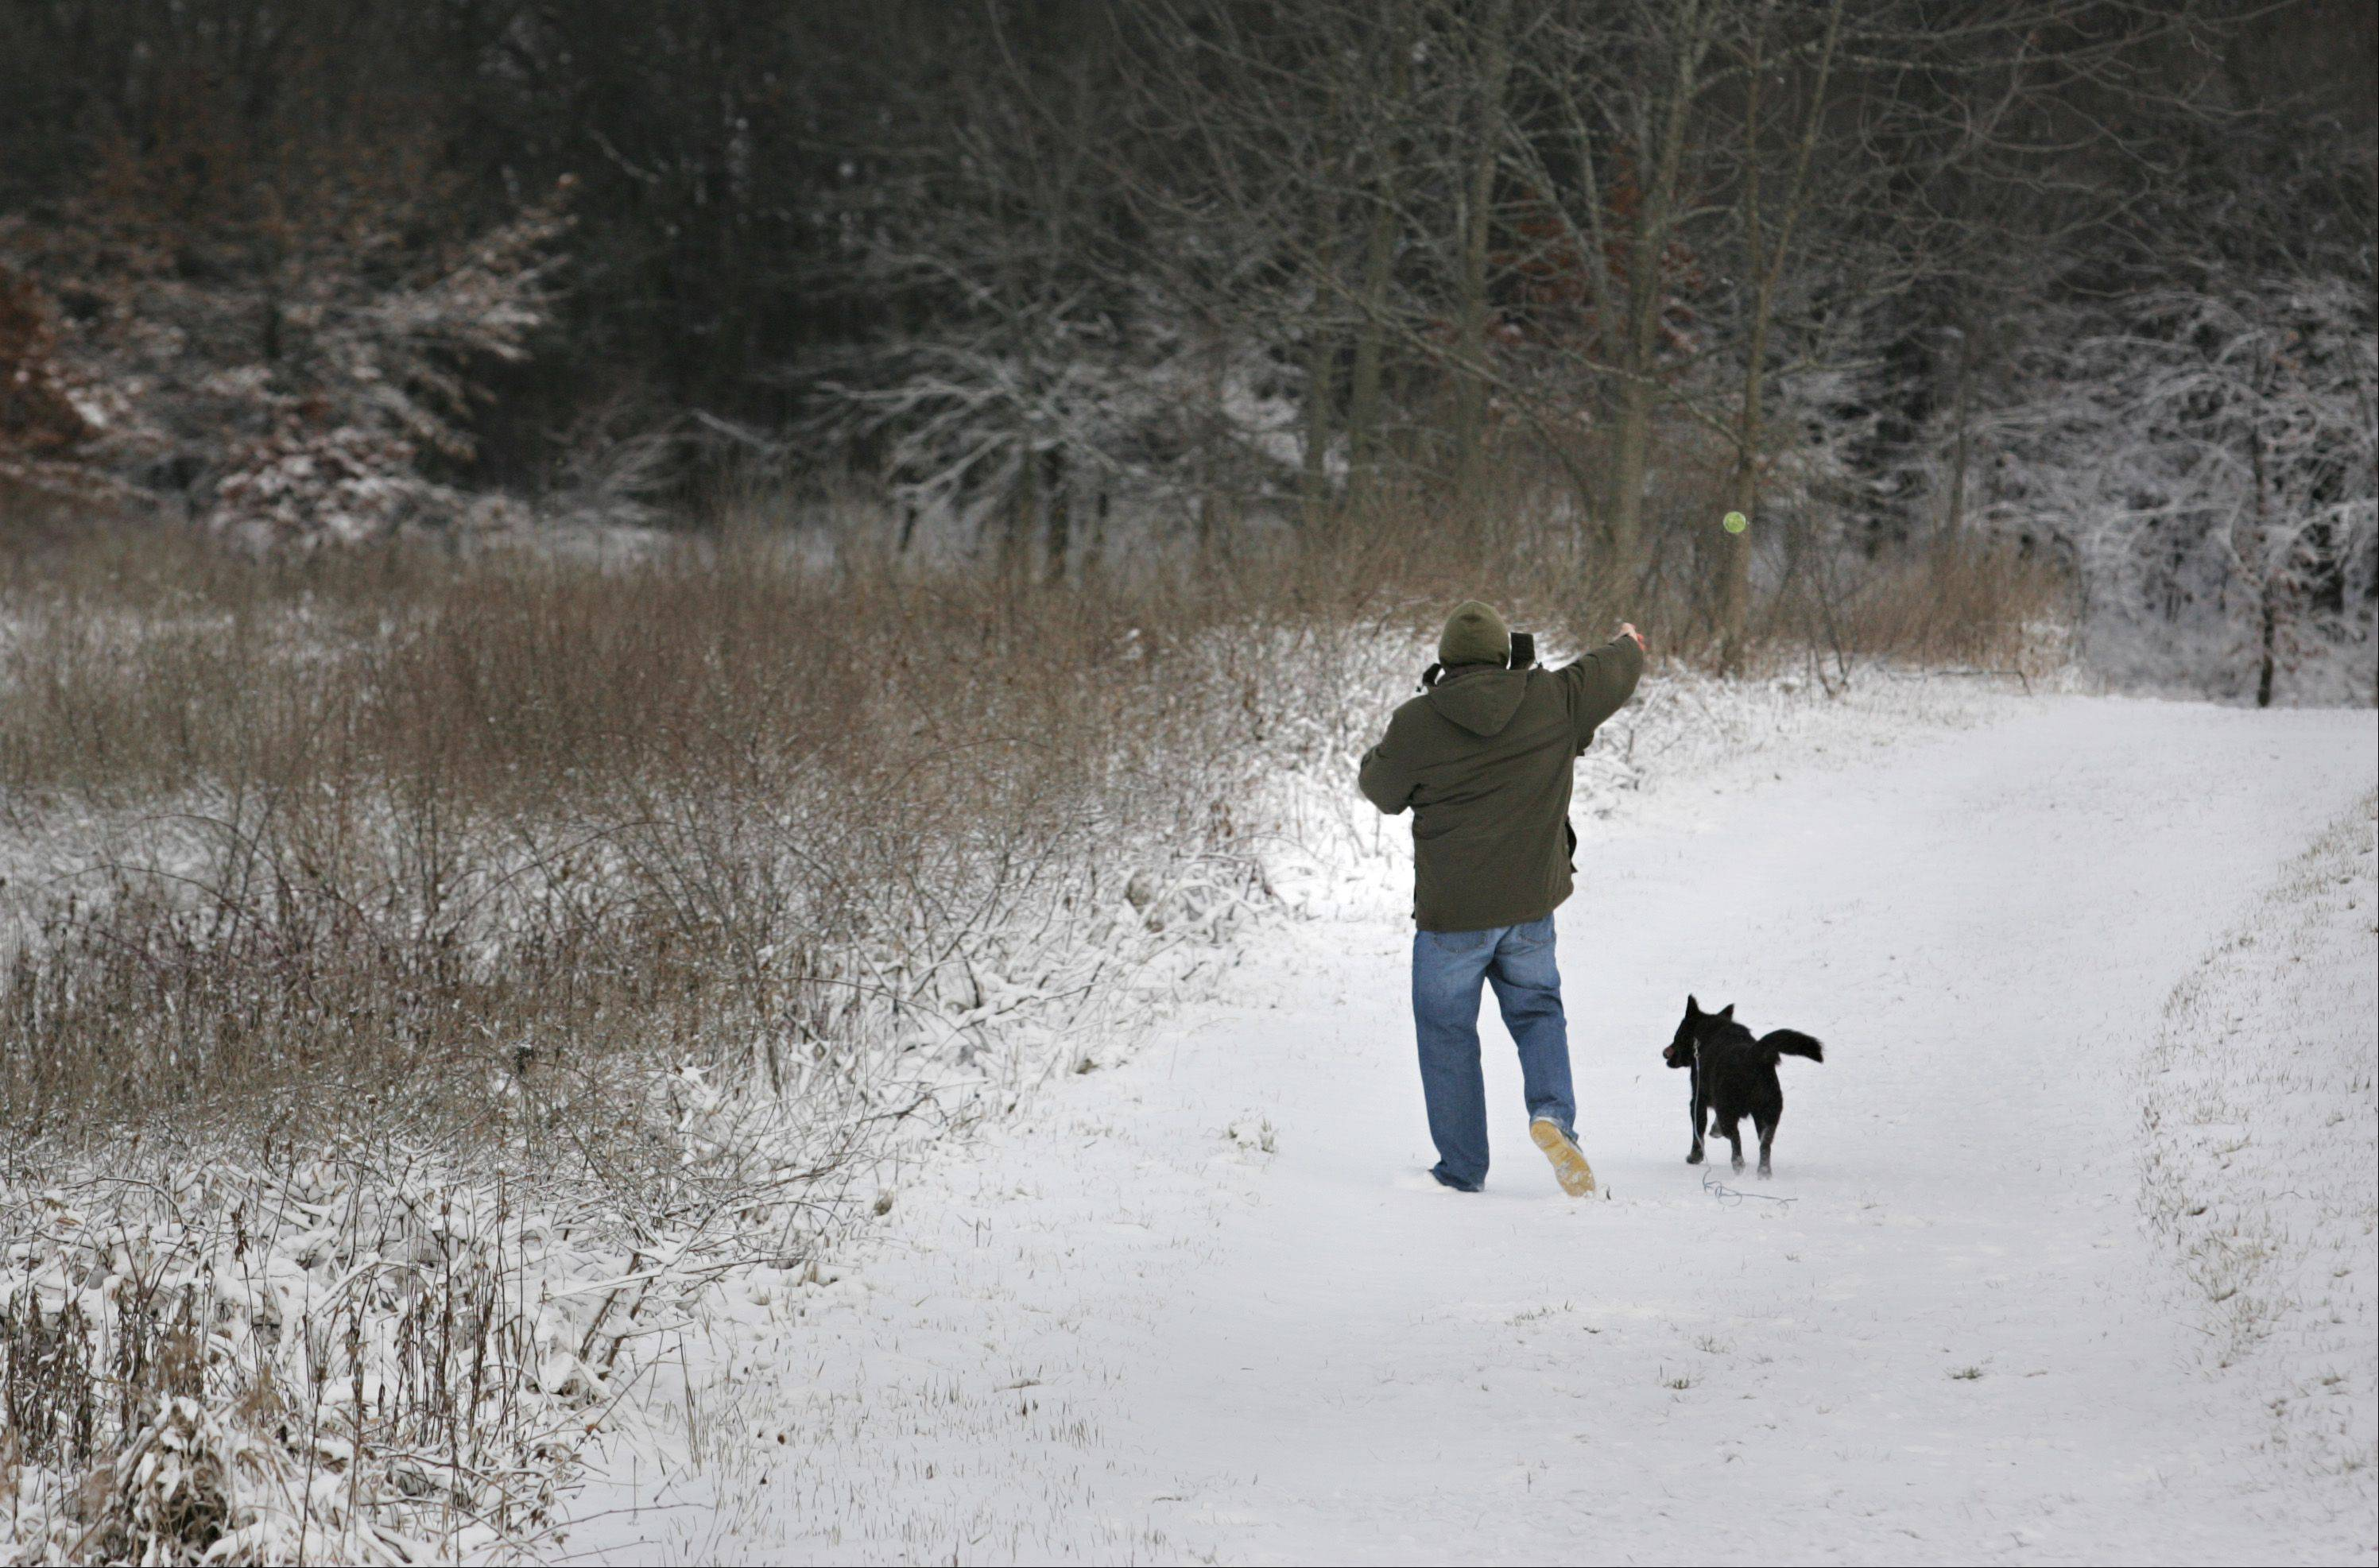 Don Ernst of Pingree Grove takes a walk with his dog Indigo Friday morning at the Hampshire Forest Preserve on Allen Road. Ernst said he was hoping the overnight storm would have brought more snow, instead of all the rain that preceded it. He would have liked to do without all the wind, too, but at least the sun was shining.